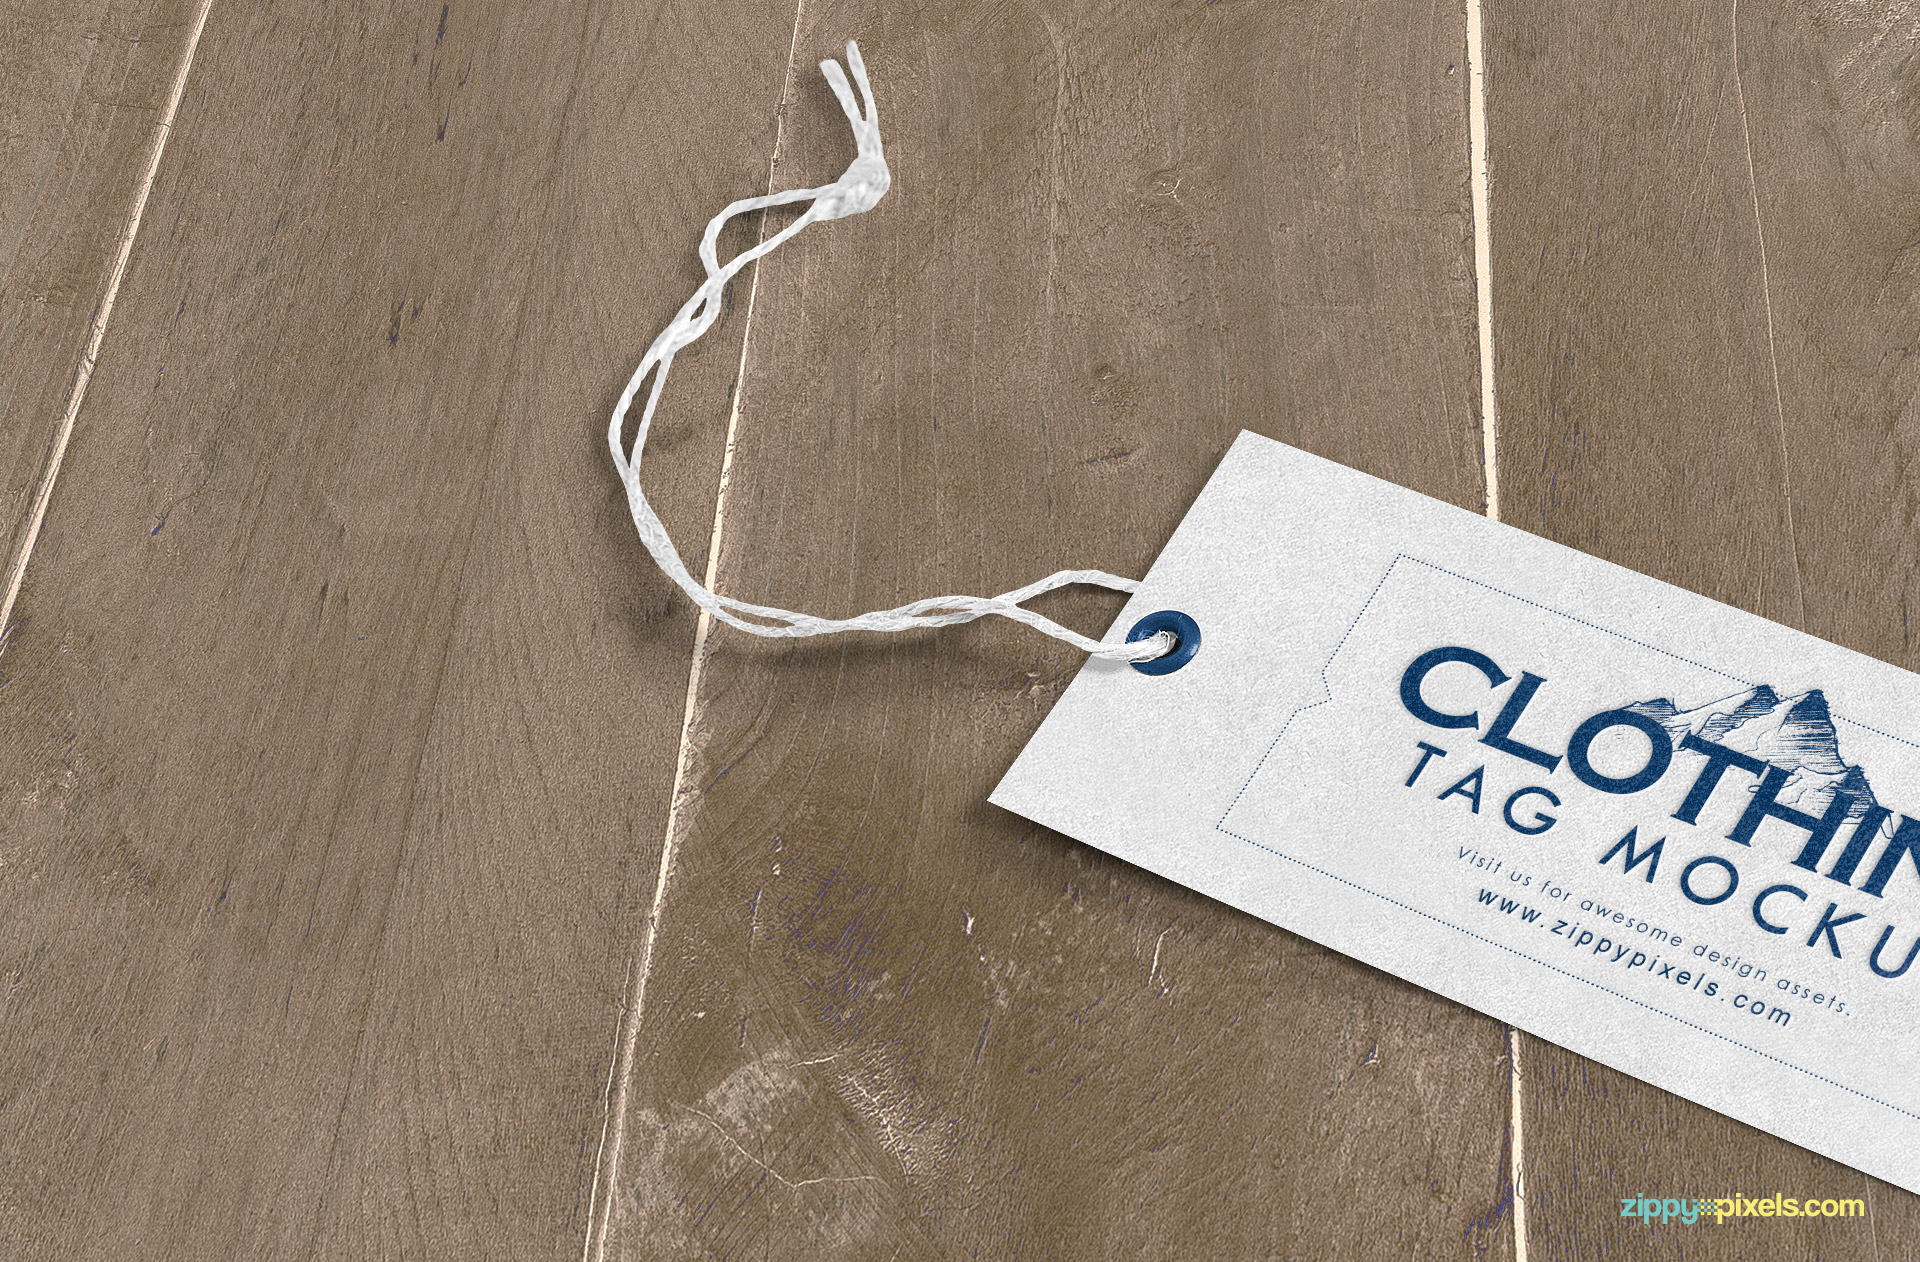 t-shirt tag laying on wooden surface mockup psd file